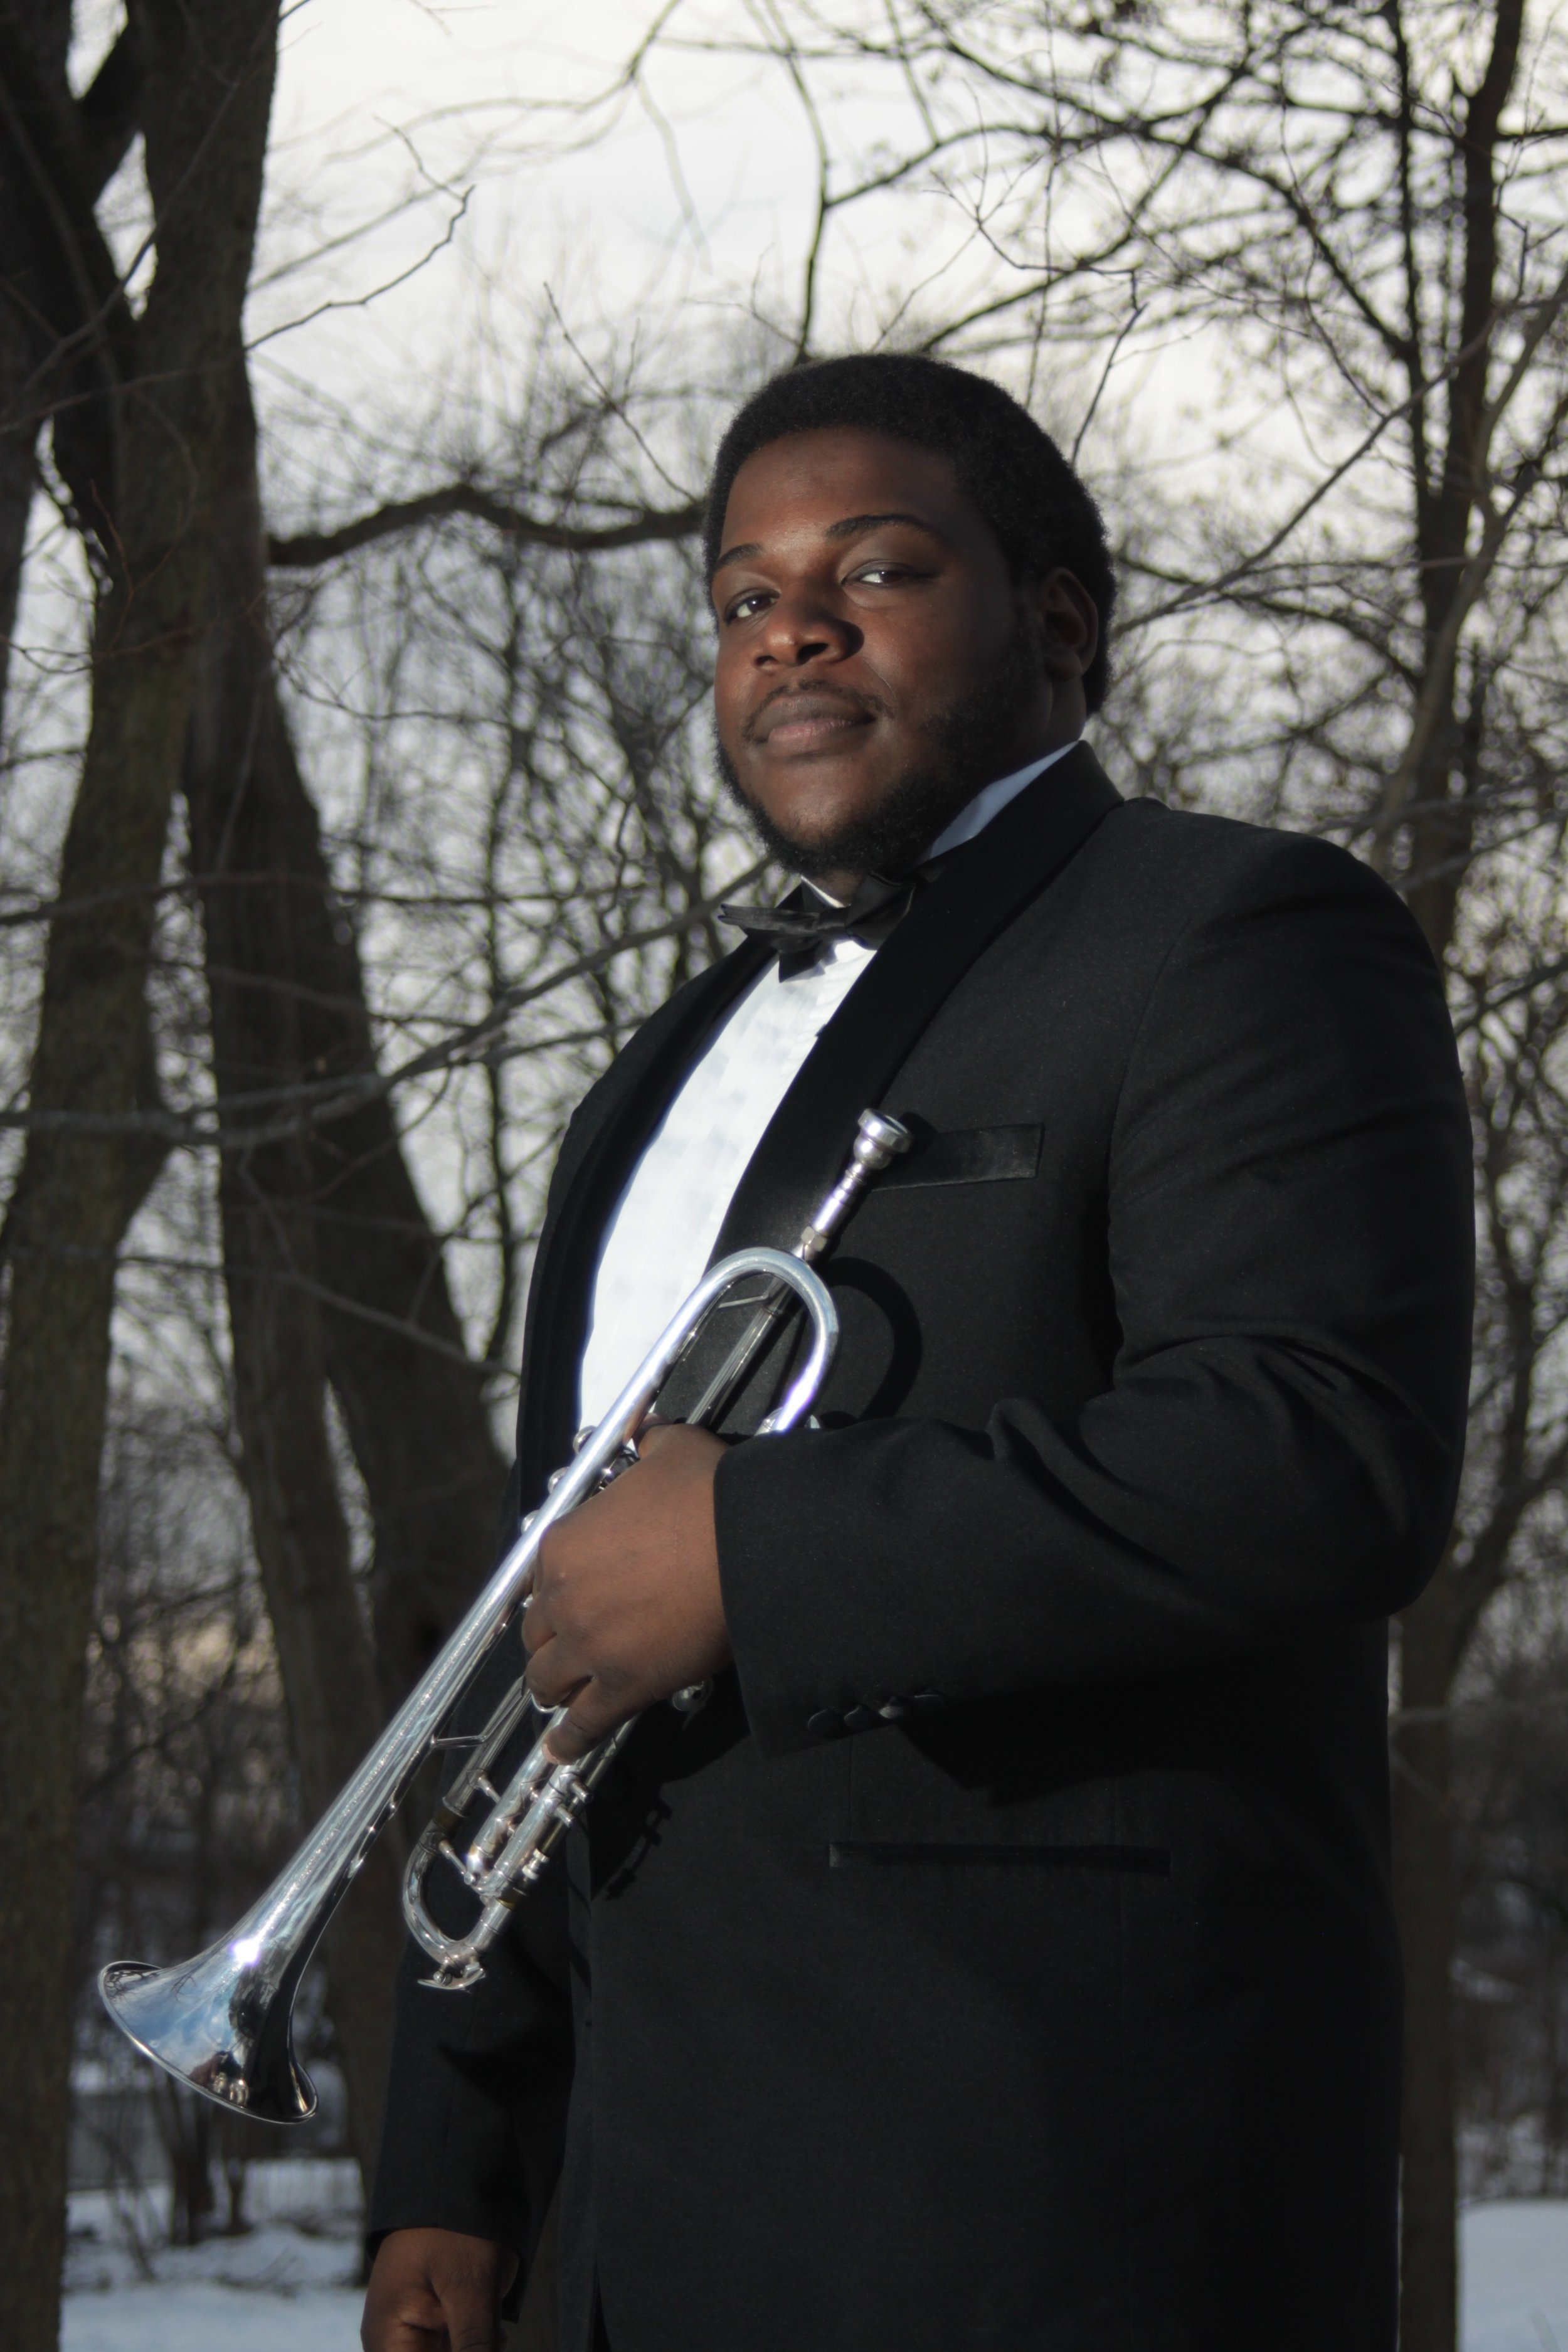 Kenneth Bean - Trumpet - Kenneth Bean is an instructor and conductor in the Philadelphia area, as well as an active freelancetrumpeter. He earned a Bachelor of Music from the Oberlin Conservatory of Music and a Master of Music Education from Jackson State University. He has taught at many festivals and schools, including The School District of Philadelphia, St. Francis de Sales School, The Premier Orchestral Institute of the Mississippi Symphony, Luzerne Music Center and Kinhaven Music School where he currently teaches trumpet and serves as Conductor of Chorus and Orchestra for Junior Session.In Kenneth's conducting experience, he was the Associate Conductor of Philadelphia Youth Orchestra and served as substitute conductor for Mississippi Youth Symphony Orchestra, Assistant Conductor for the Northern Ohio Youth Orchestra and the Junior String Philharmonic of the Lehigh Valley. Currently, he serves as Music Director/Conductor of the Young People's Philharmonic of the Lehigh Valley and Director/Conductor of the Philadelphia Young Musicians Orchestra. Kenny also serves as the Assistant Conductor of Symphony in C, is Co-Director of Symphony in C's Summer Music Camp and is Music Director of Symphony in C's Youth Orchestra.